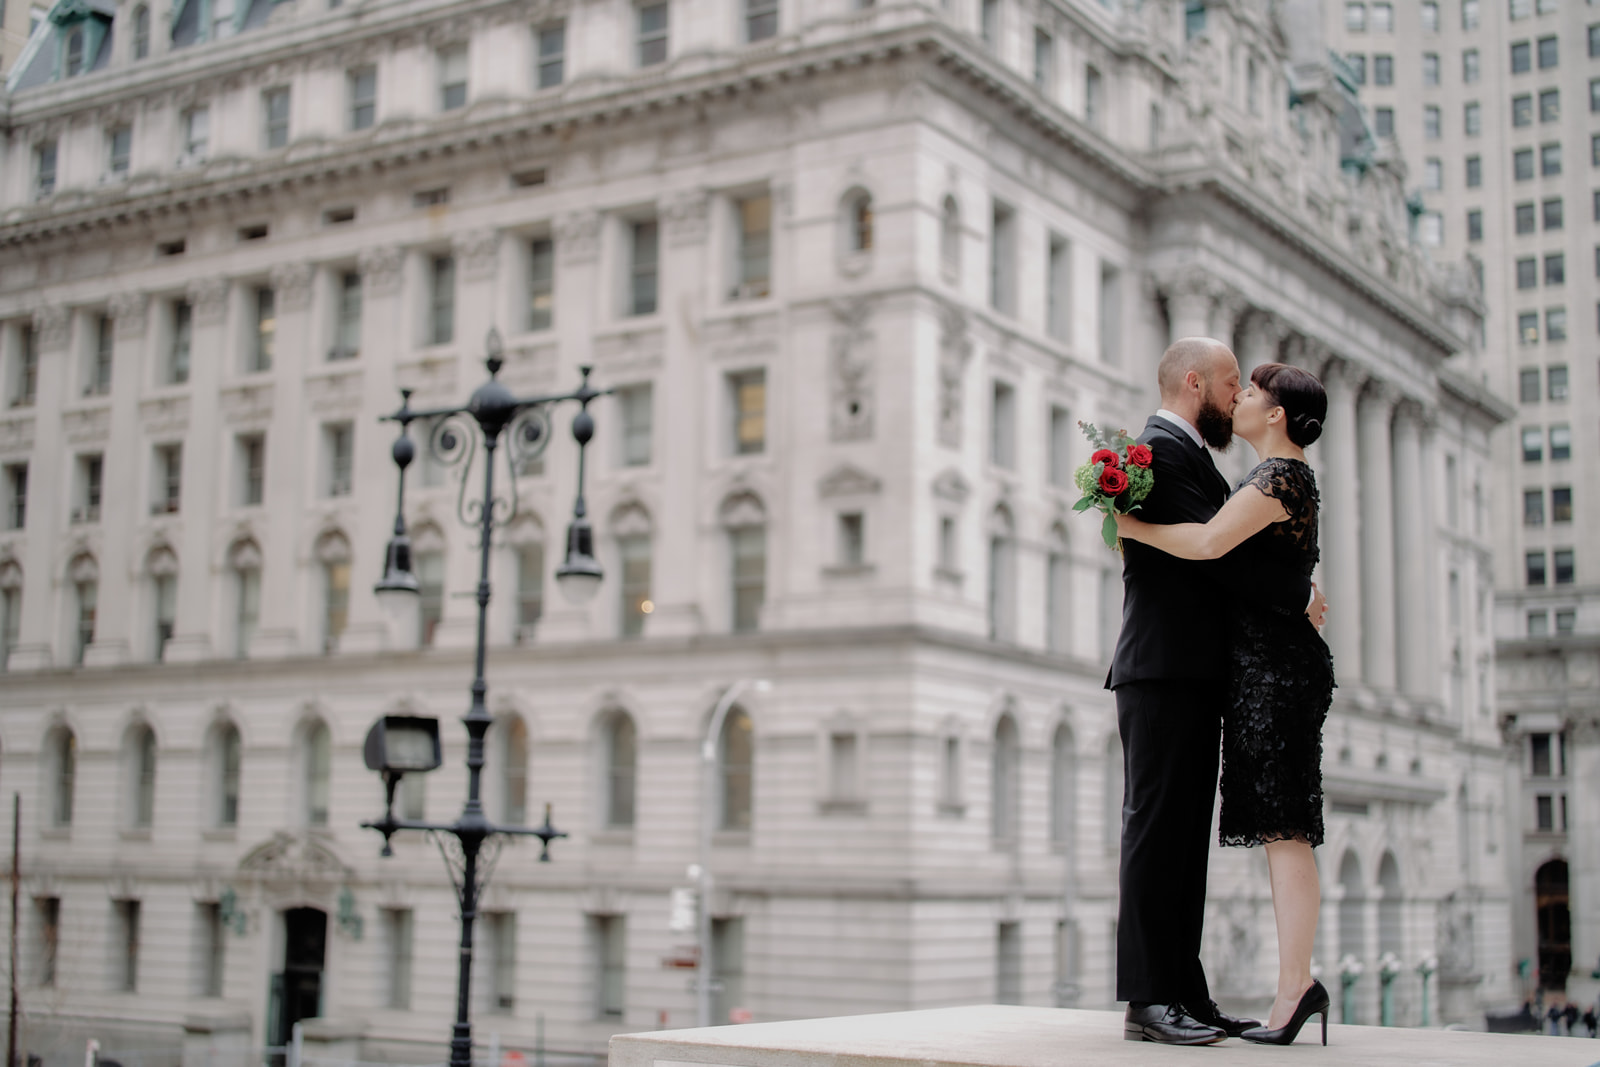 City Hall Wedding Photographer, City Hall Wedding Photography, Marriage Bureau, New York Elopement, Eloping at City Hall, City Hall Weddings, NYC Wedding Photographer, Weddings at City Hall, Elope in NYC, Eloping is fun,